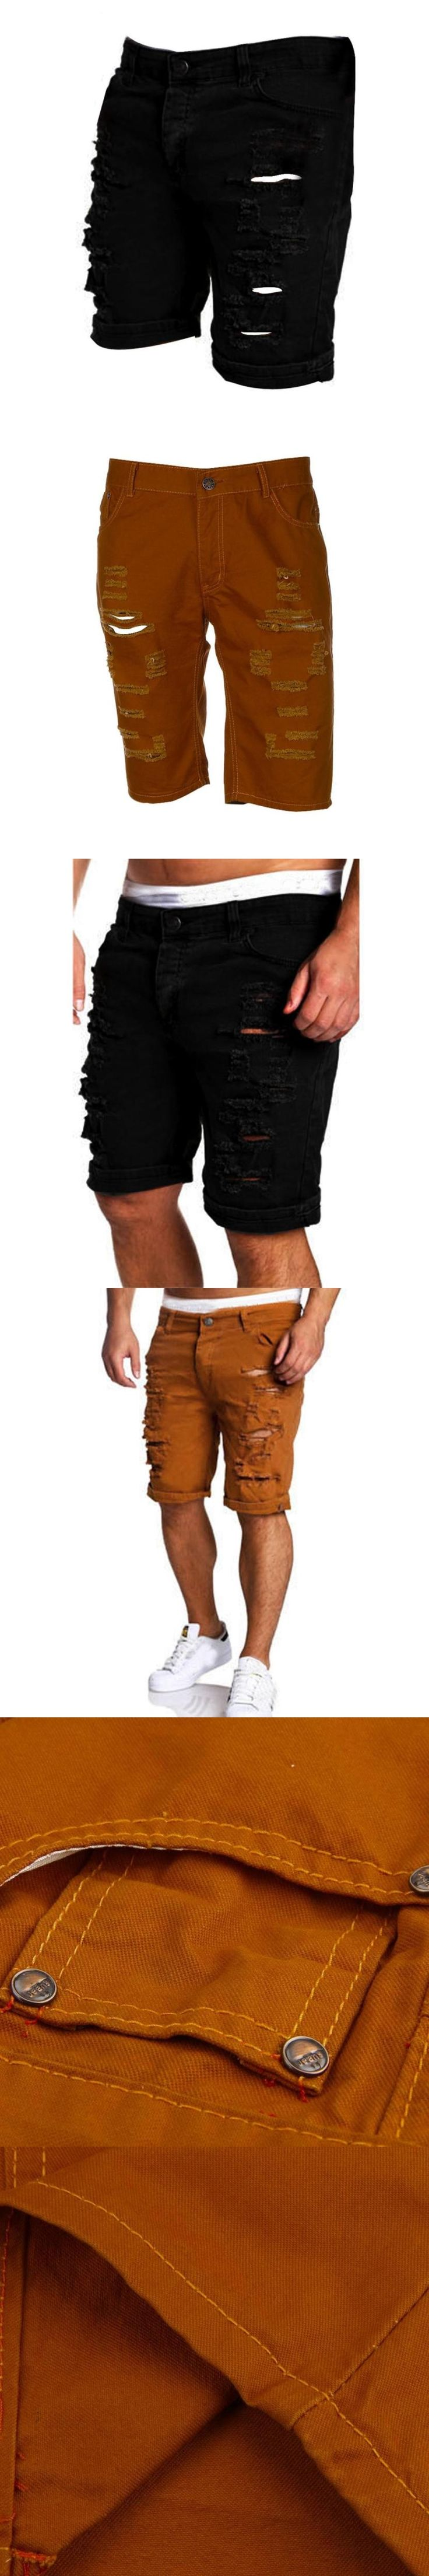 Summer Fashion Men's Casual Jeans Destroyed Knee Length Hole Ripped High sales Pants Bomber Pants pantalon homme #AA